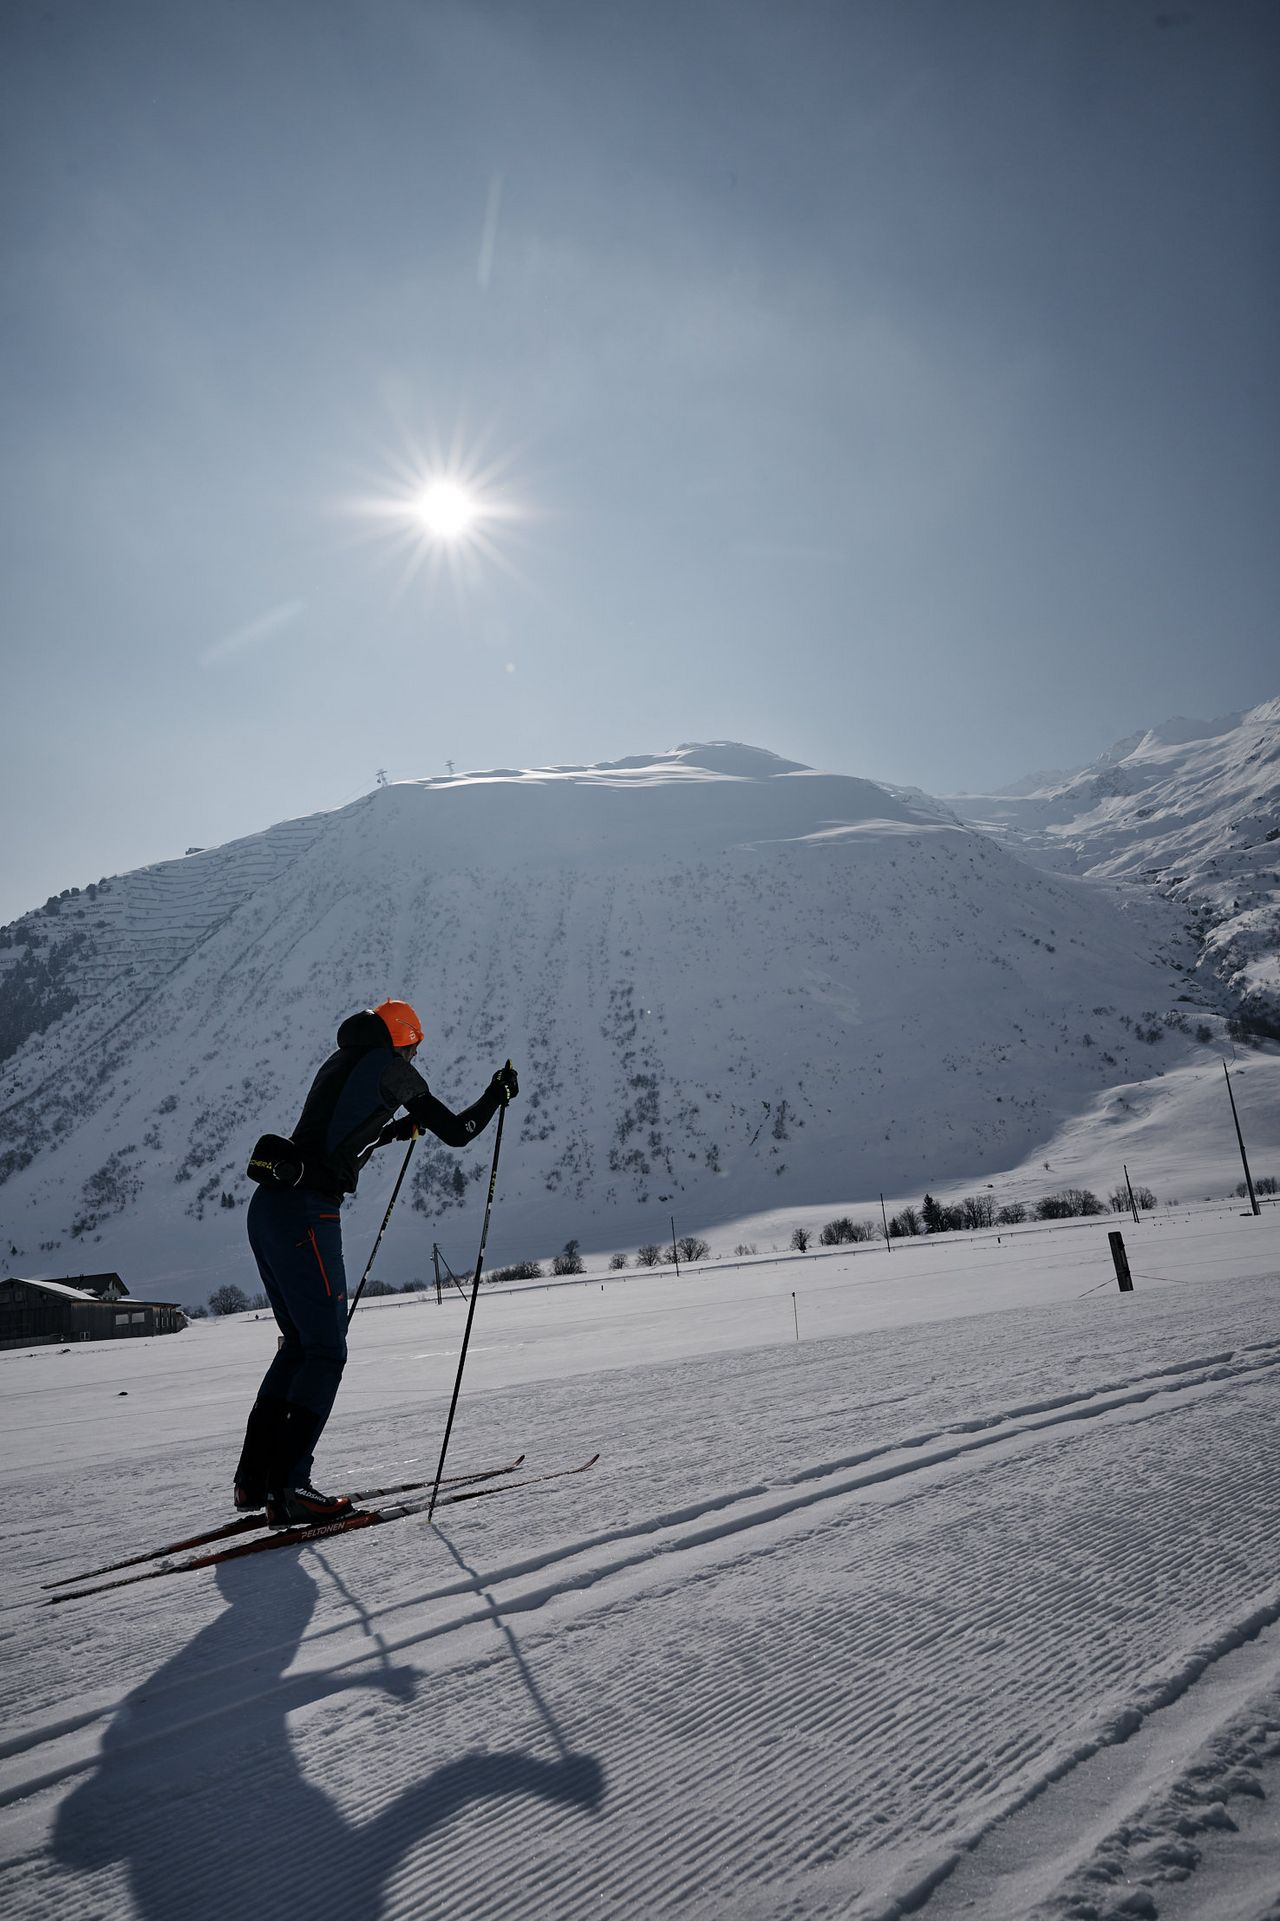 Cross-country skiing trails in Urserntal valley